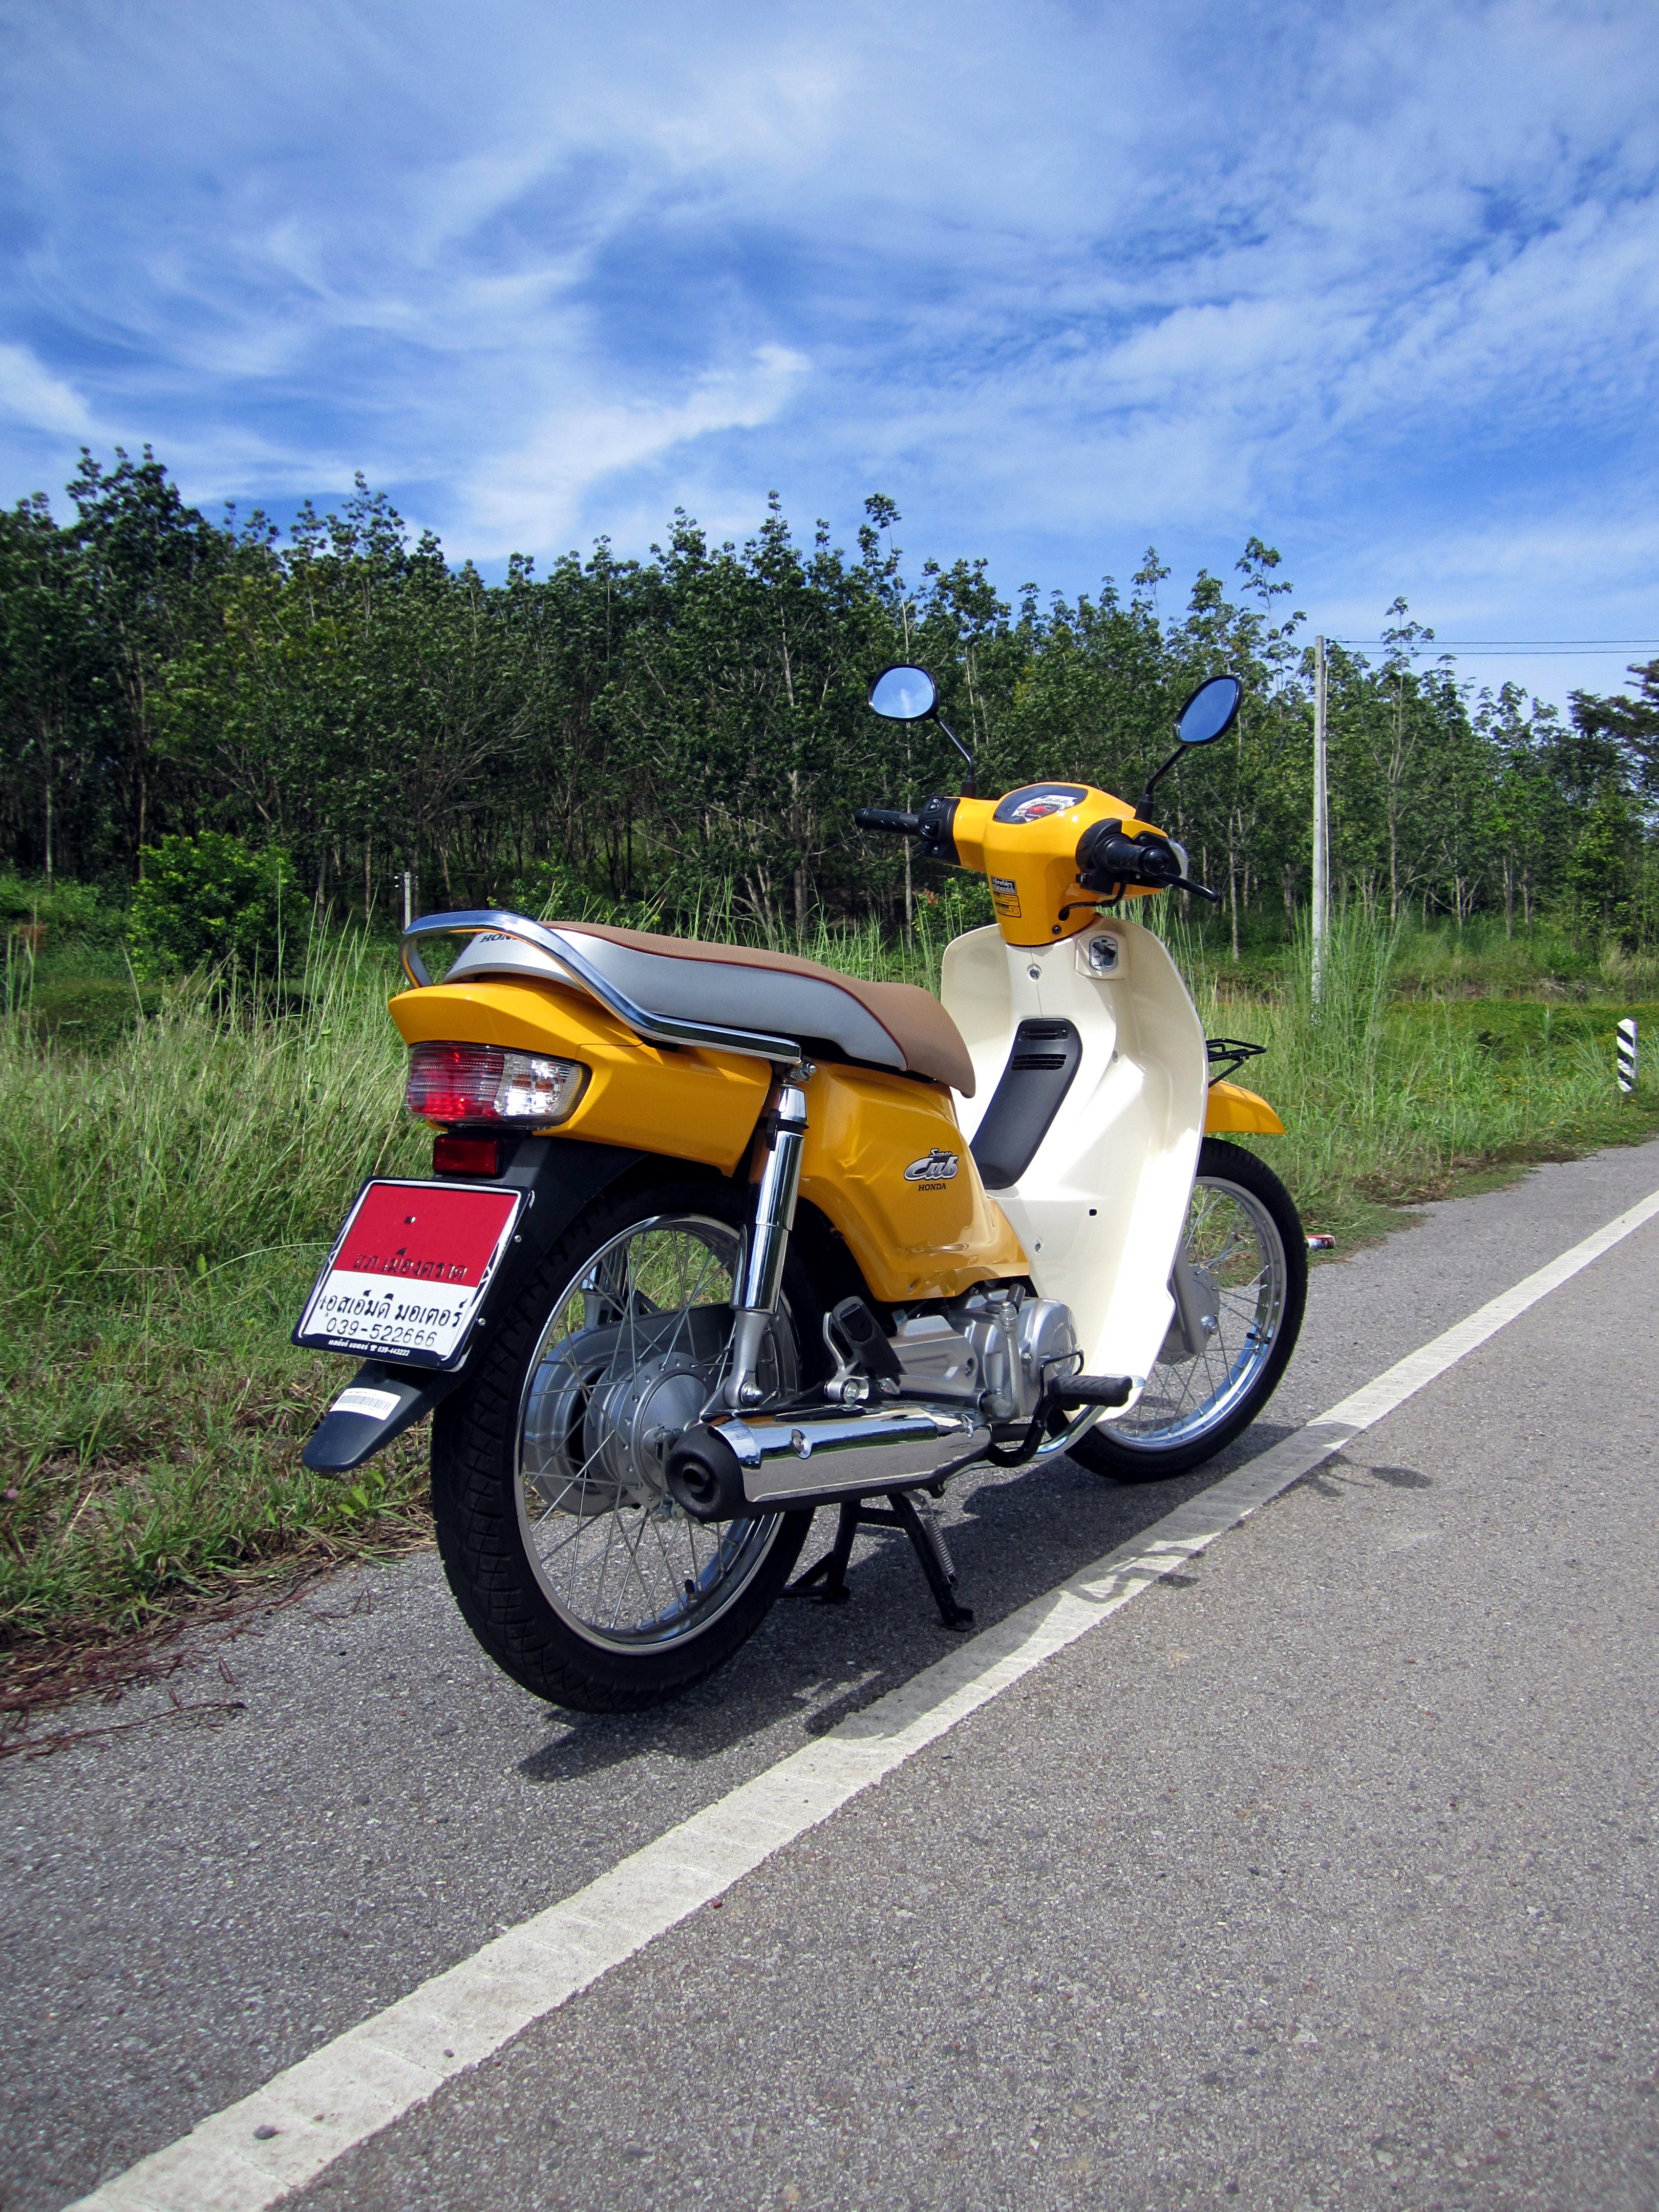 File Honda Dream 110i Super Cub Nd110m 2014 Rear View Jpg Wikimedia Commons